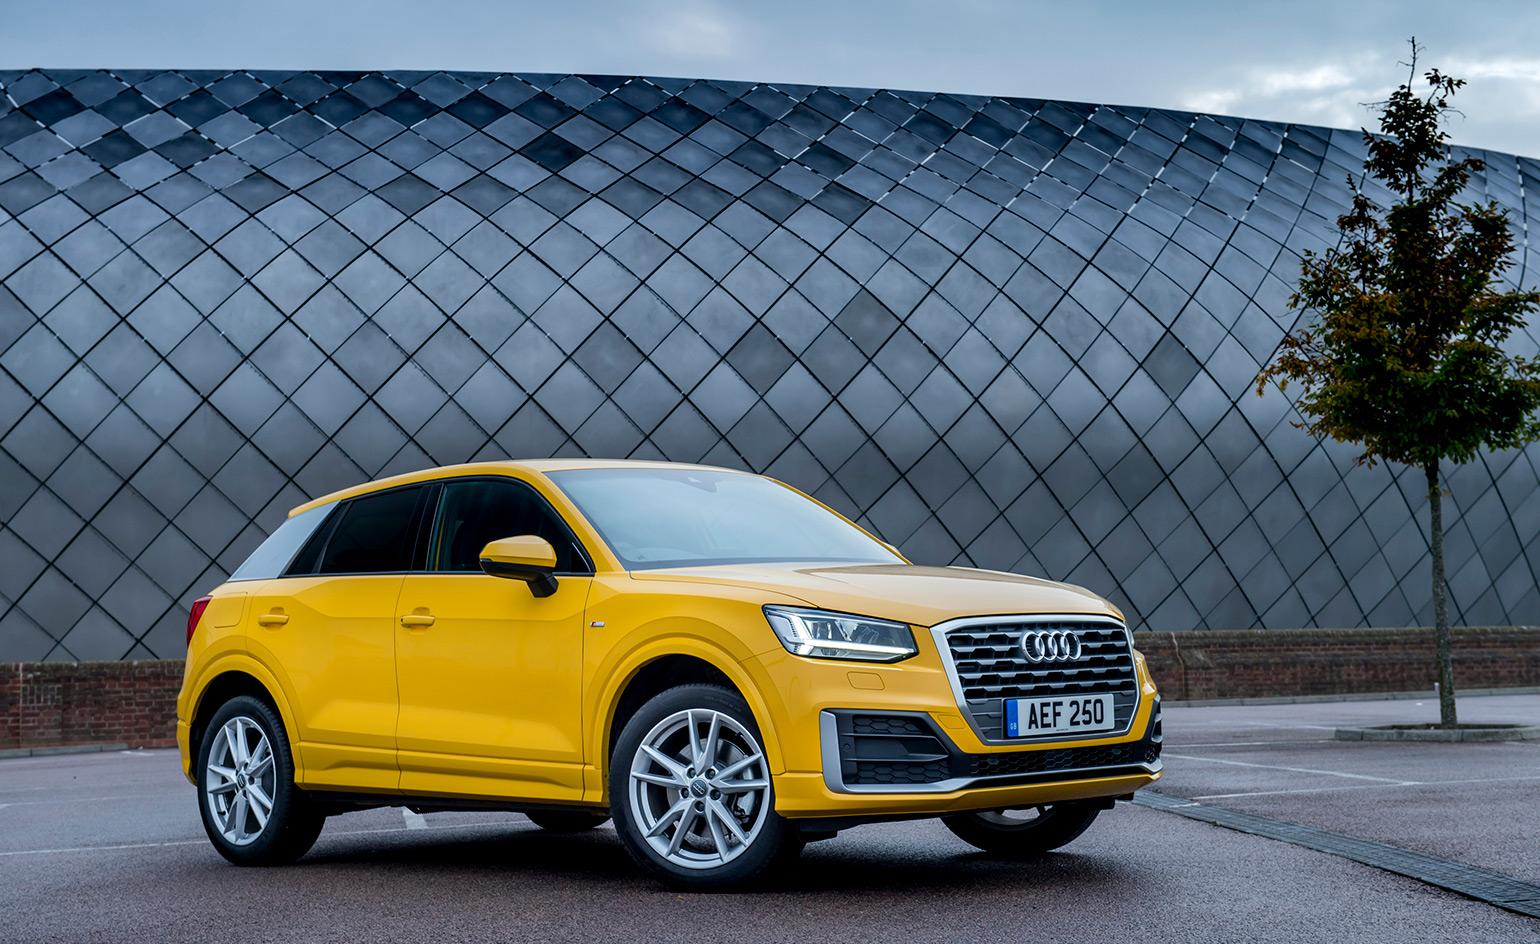 Audi presents the Q2, a new compact SUV